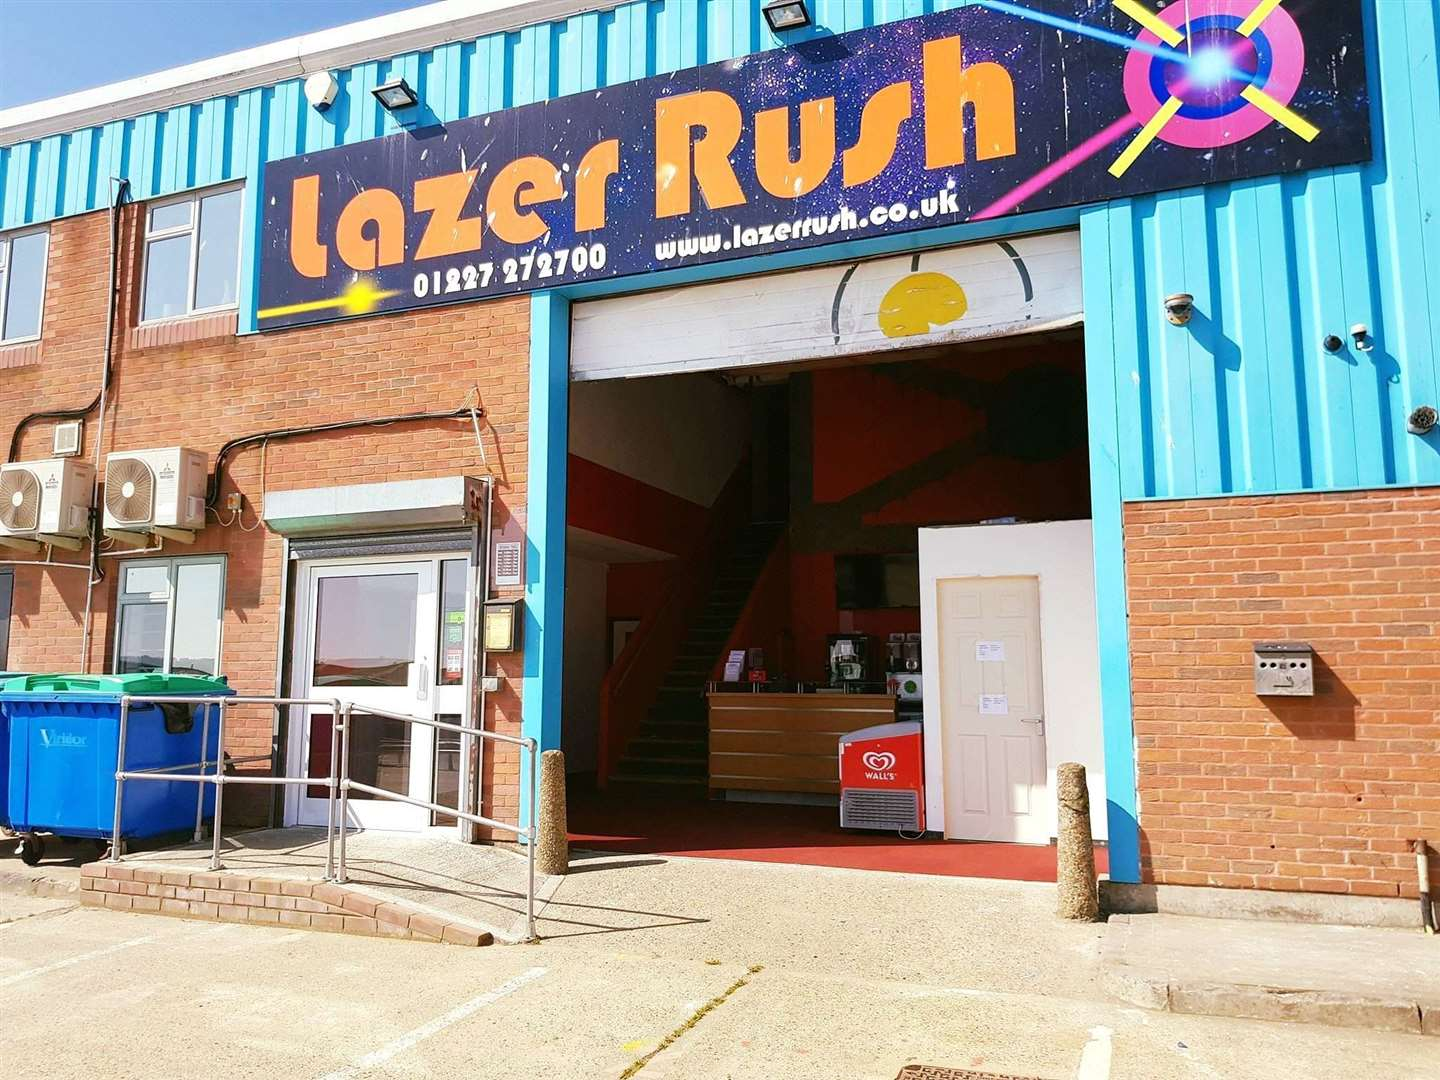 Laser Rush can be found in Whitstable